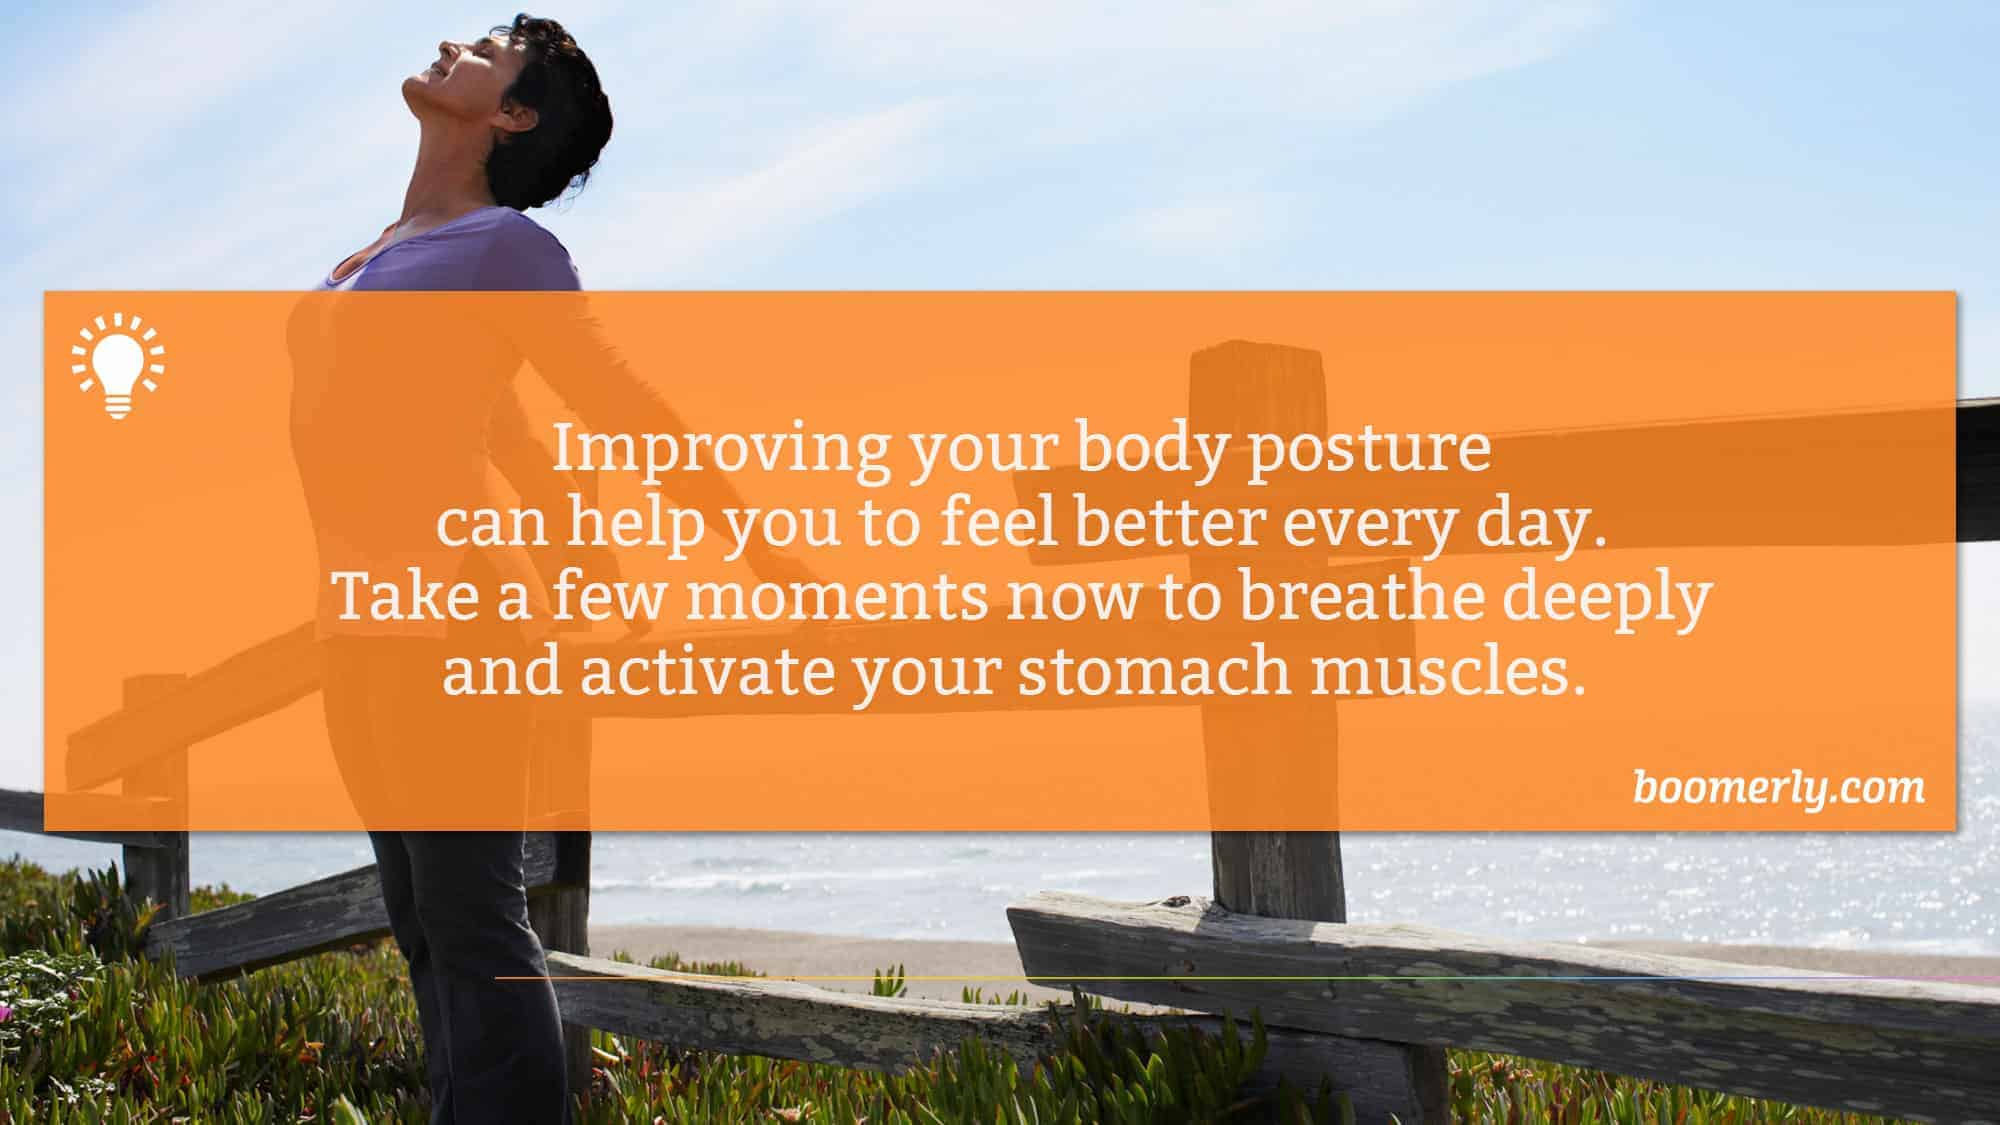 Bad posture - Improve your posture to improve your happiness.